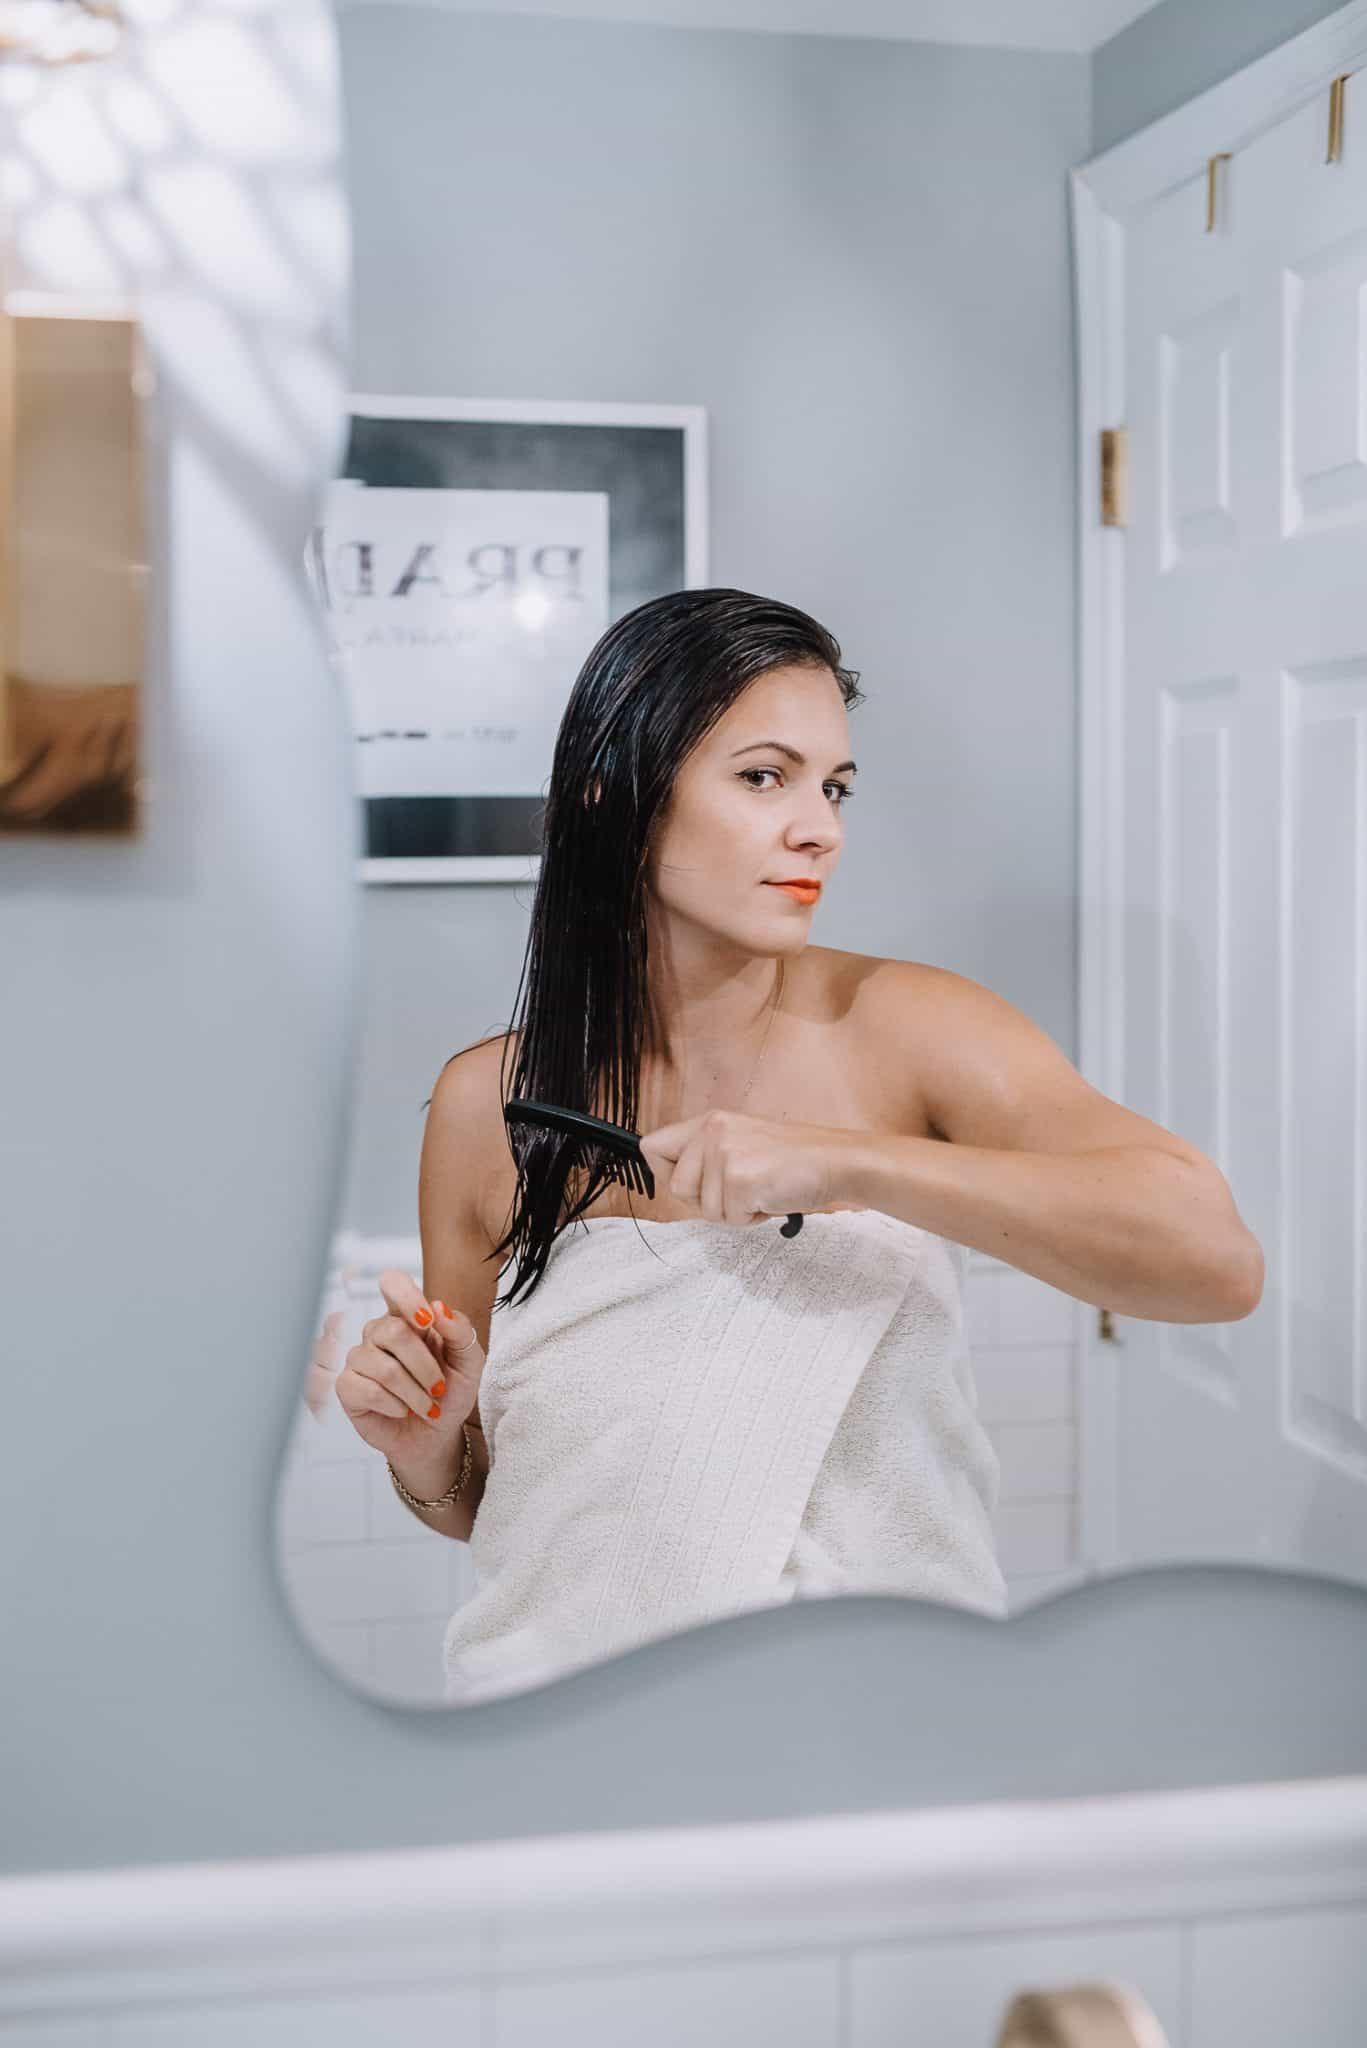 Jessica Camerata brushing her hair after a shower